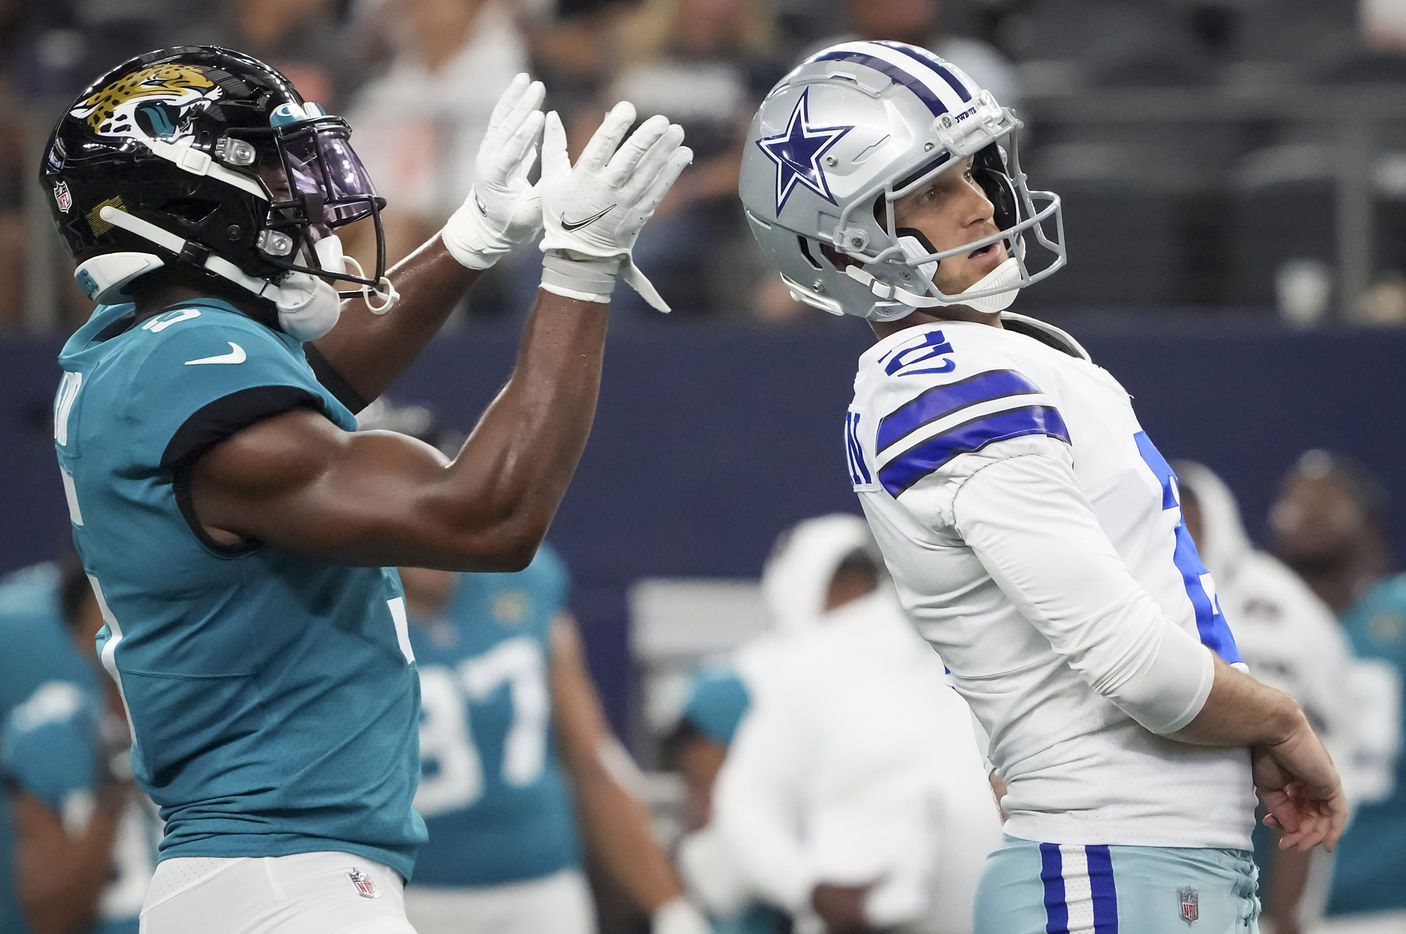 Dallas Cowboys kicker Greg Zuerlein reacts after missing on a 56-yard field goal as Jacksonville Jaguars defensive back Rudy Ford (5) celebrates during the first half of a preseason NFL football game at AT&T Stadium on Sunday, Aug. 29, 2021, in Arlington. (Smiley N. Pool/The Dallas Morning News)